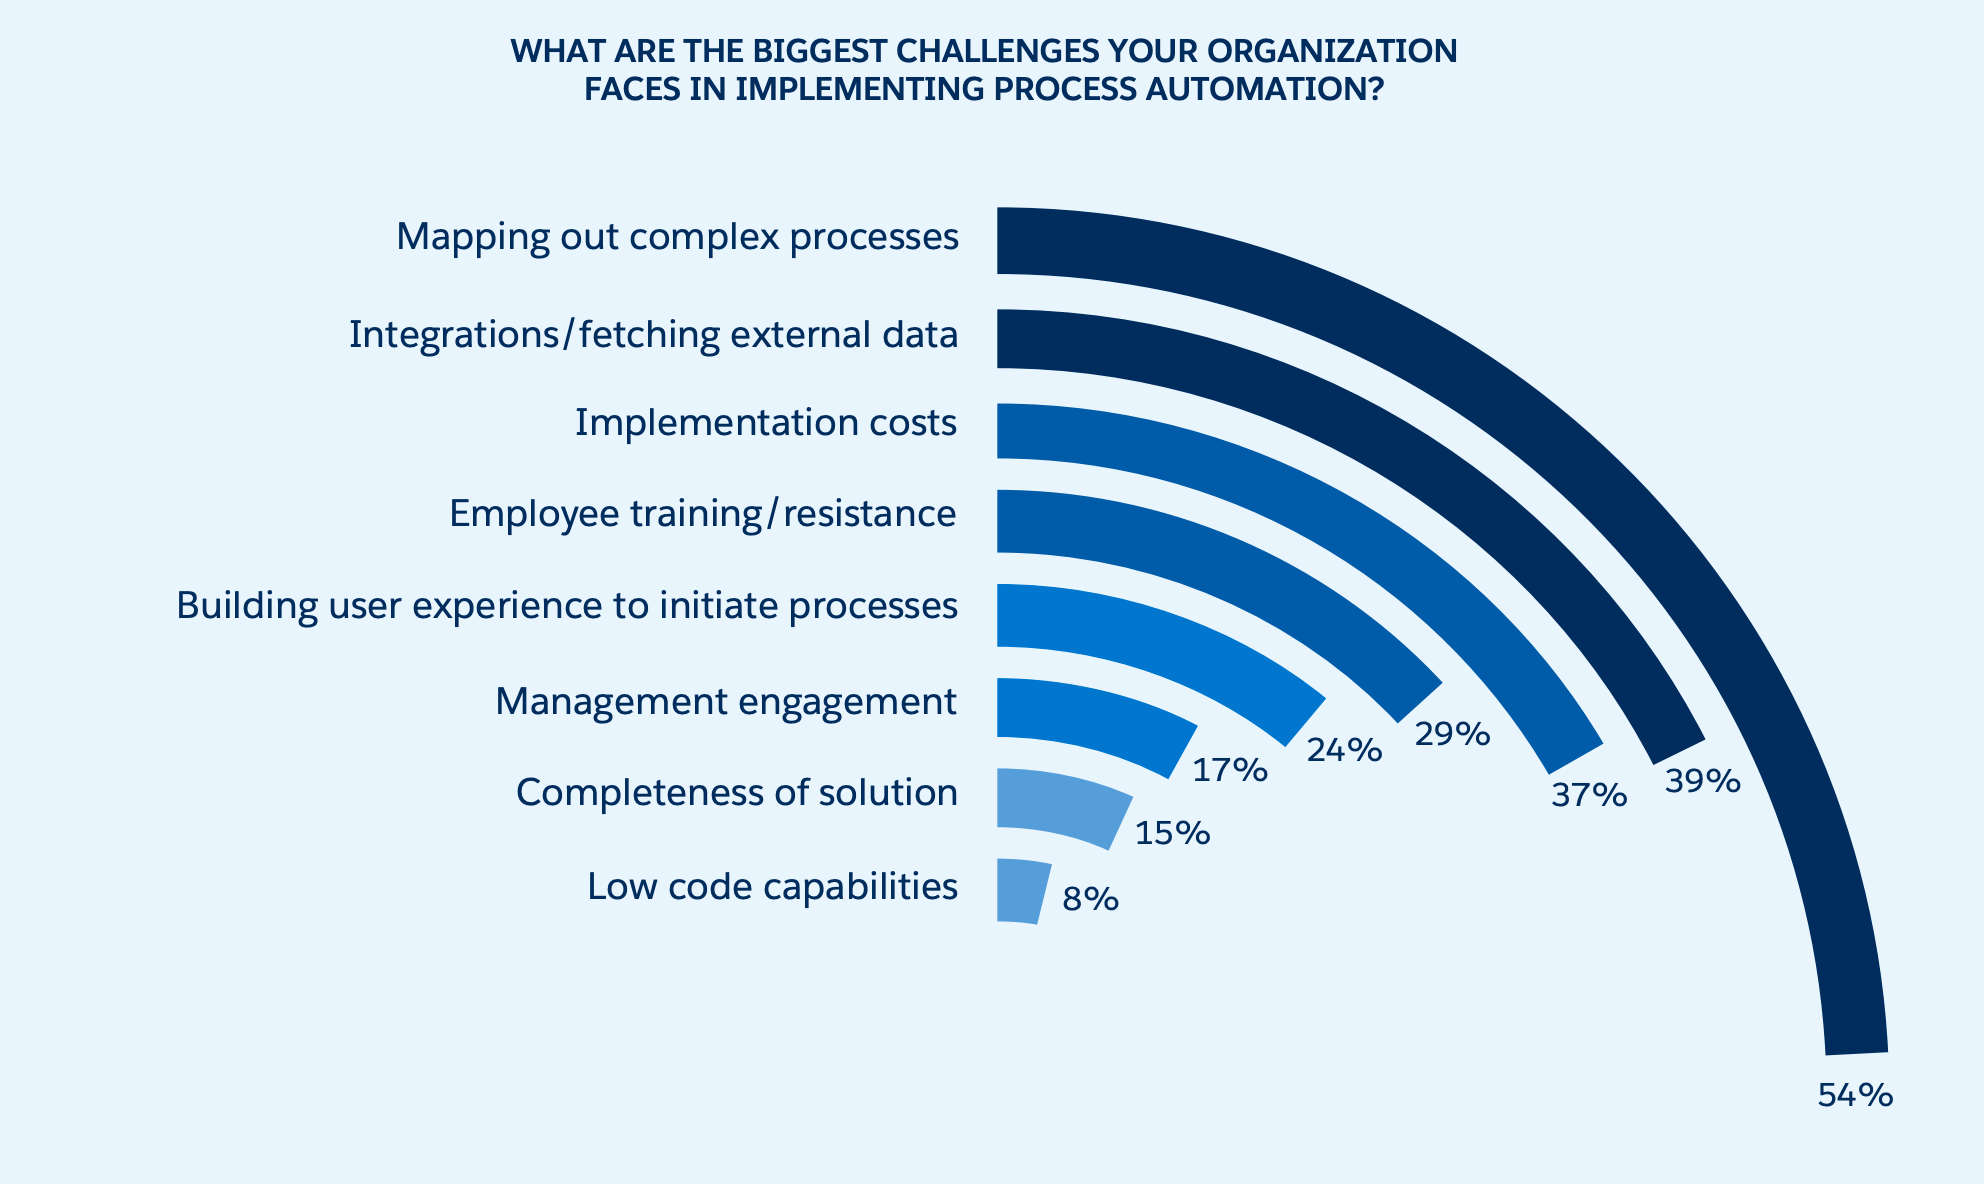 The biggest challenges when implementing automation technology